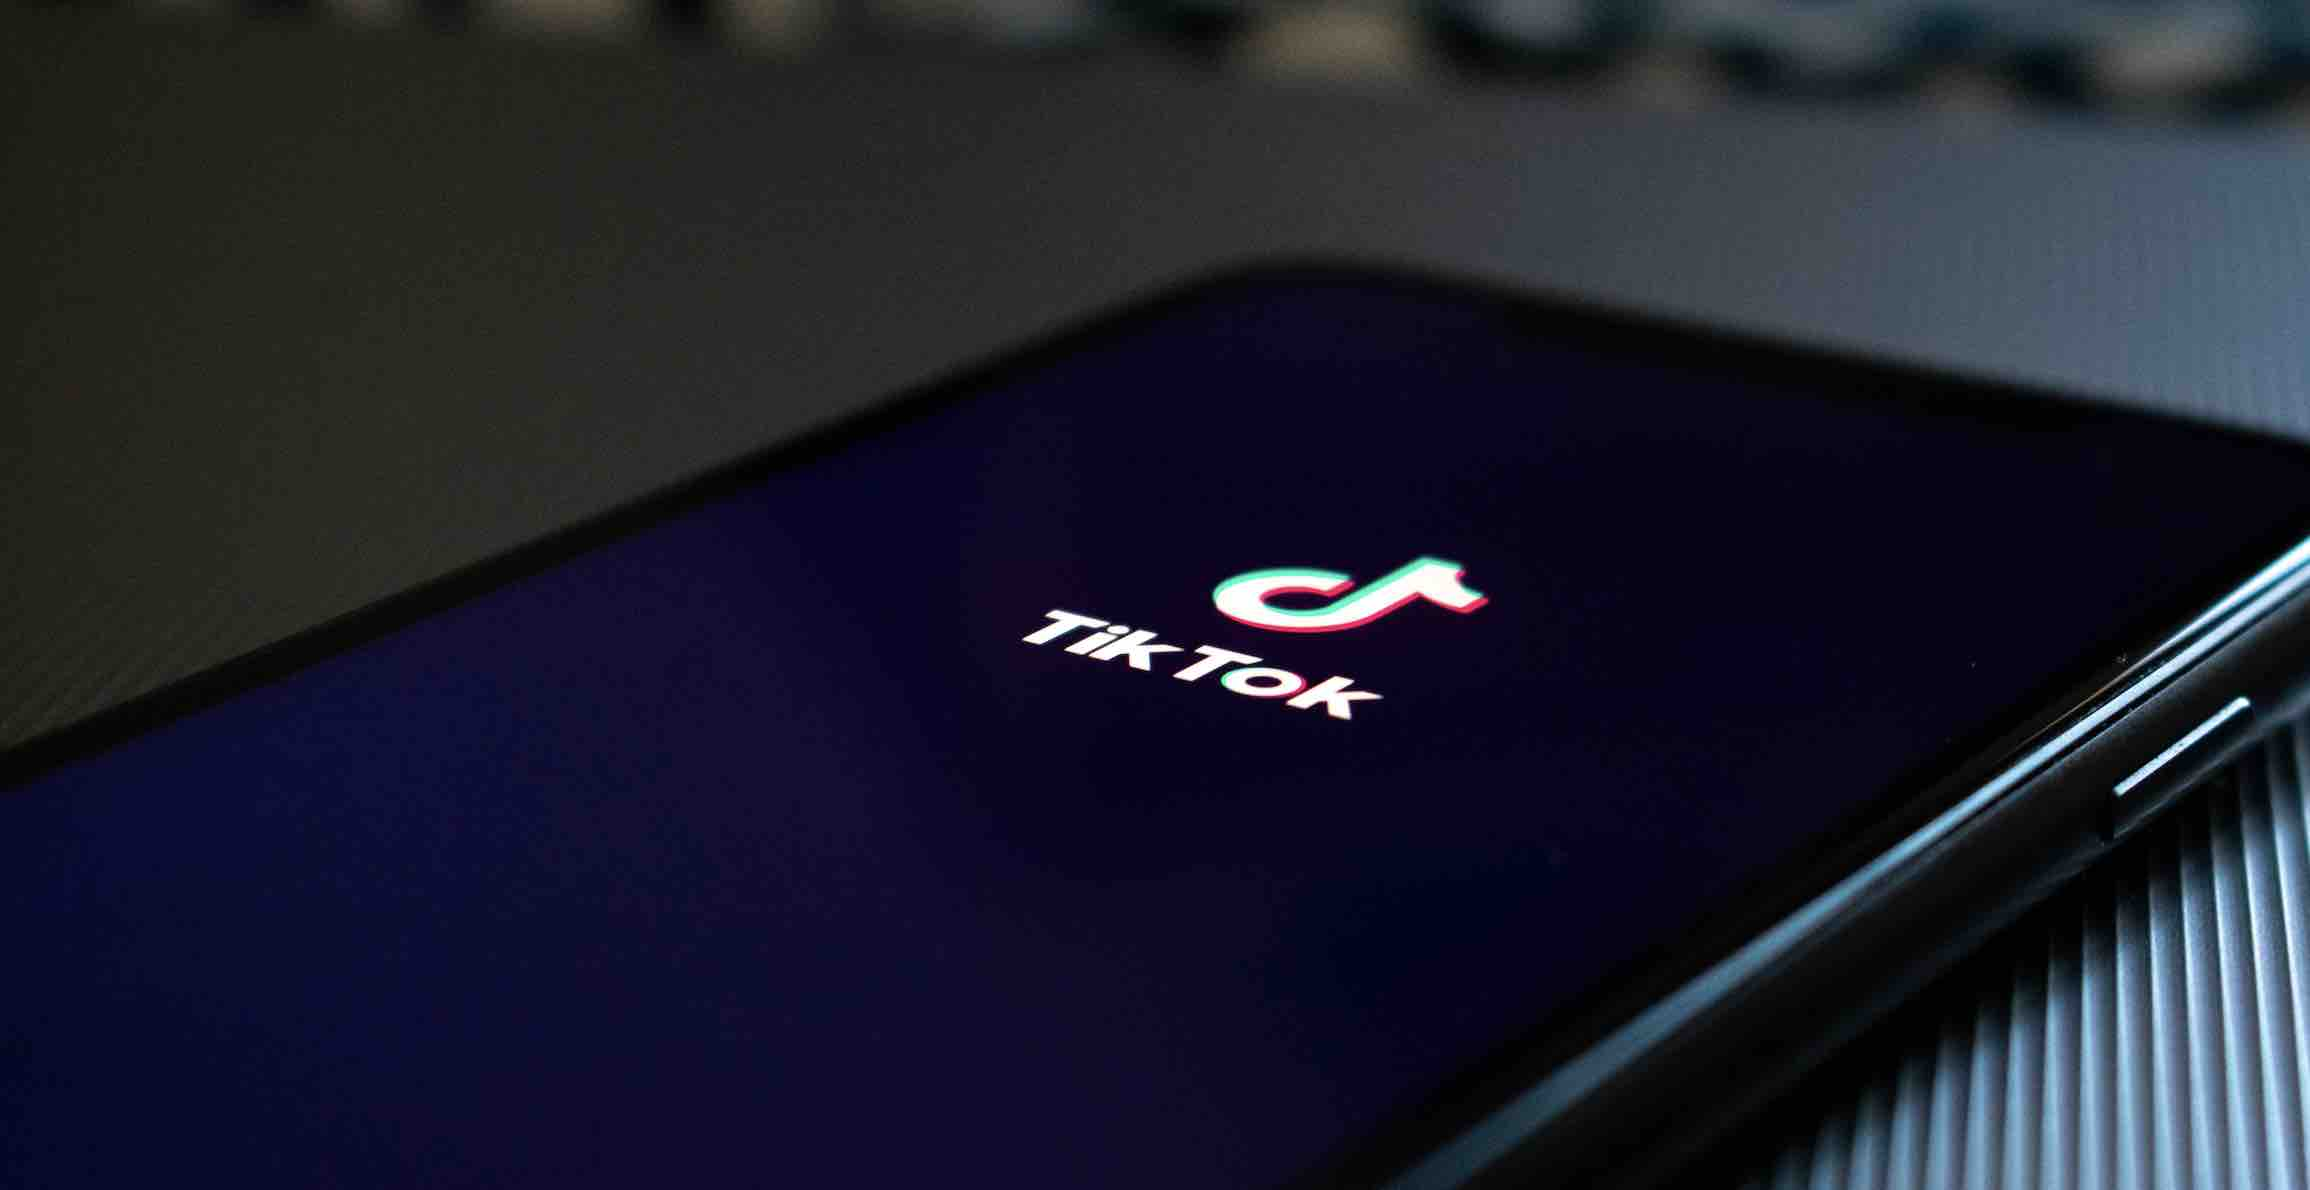 tải video tiktok